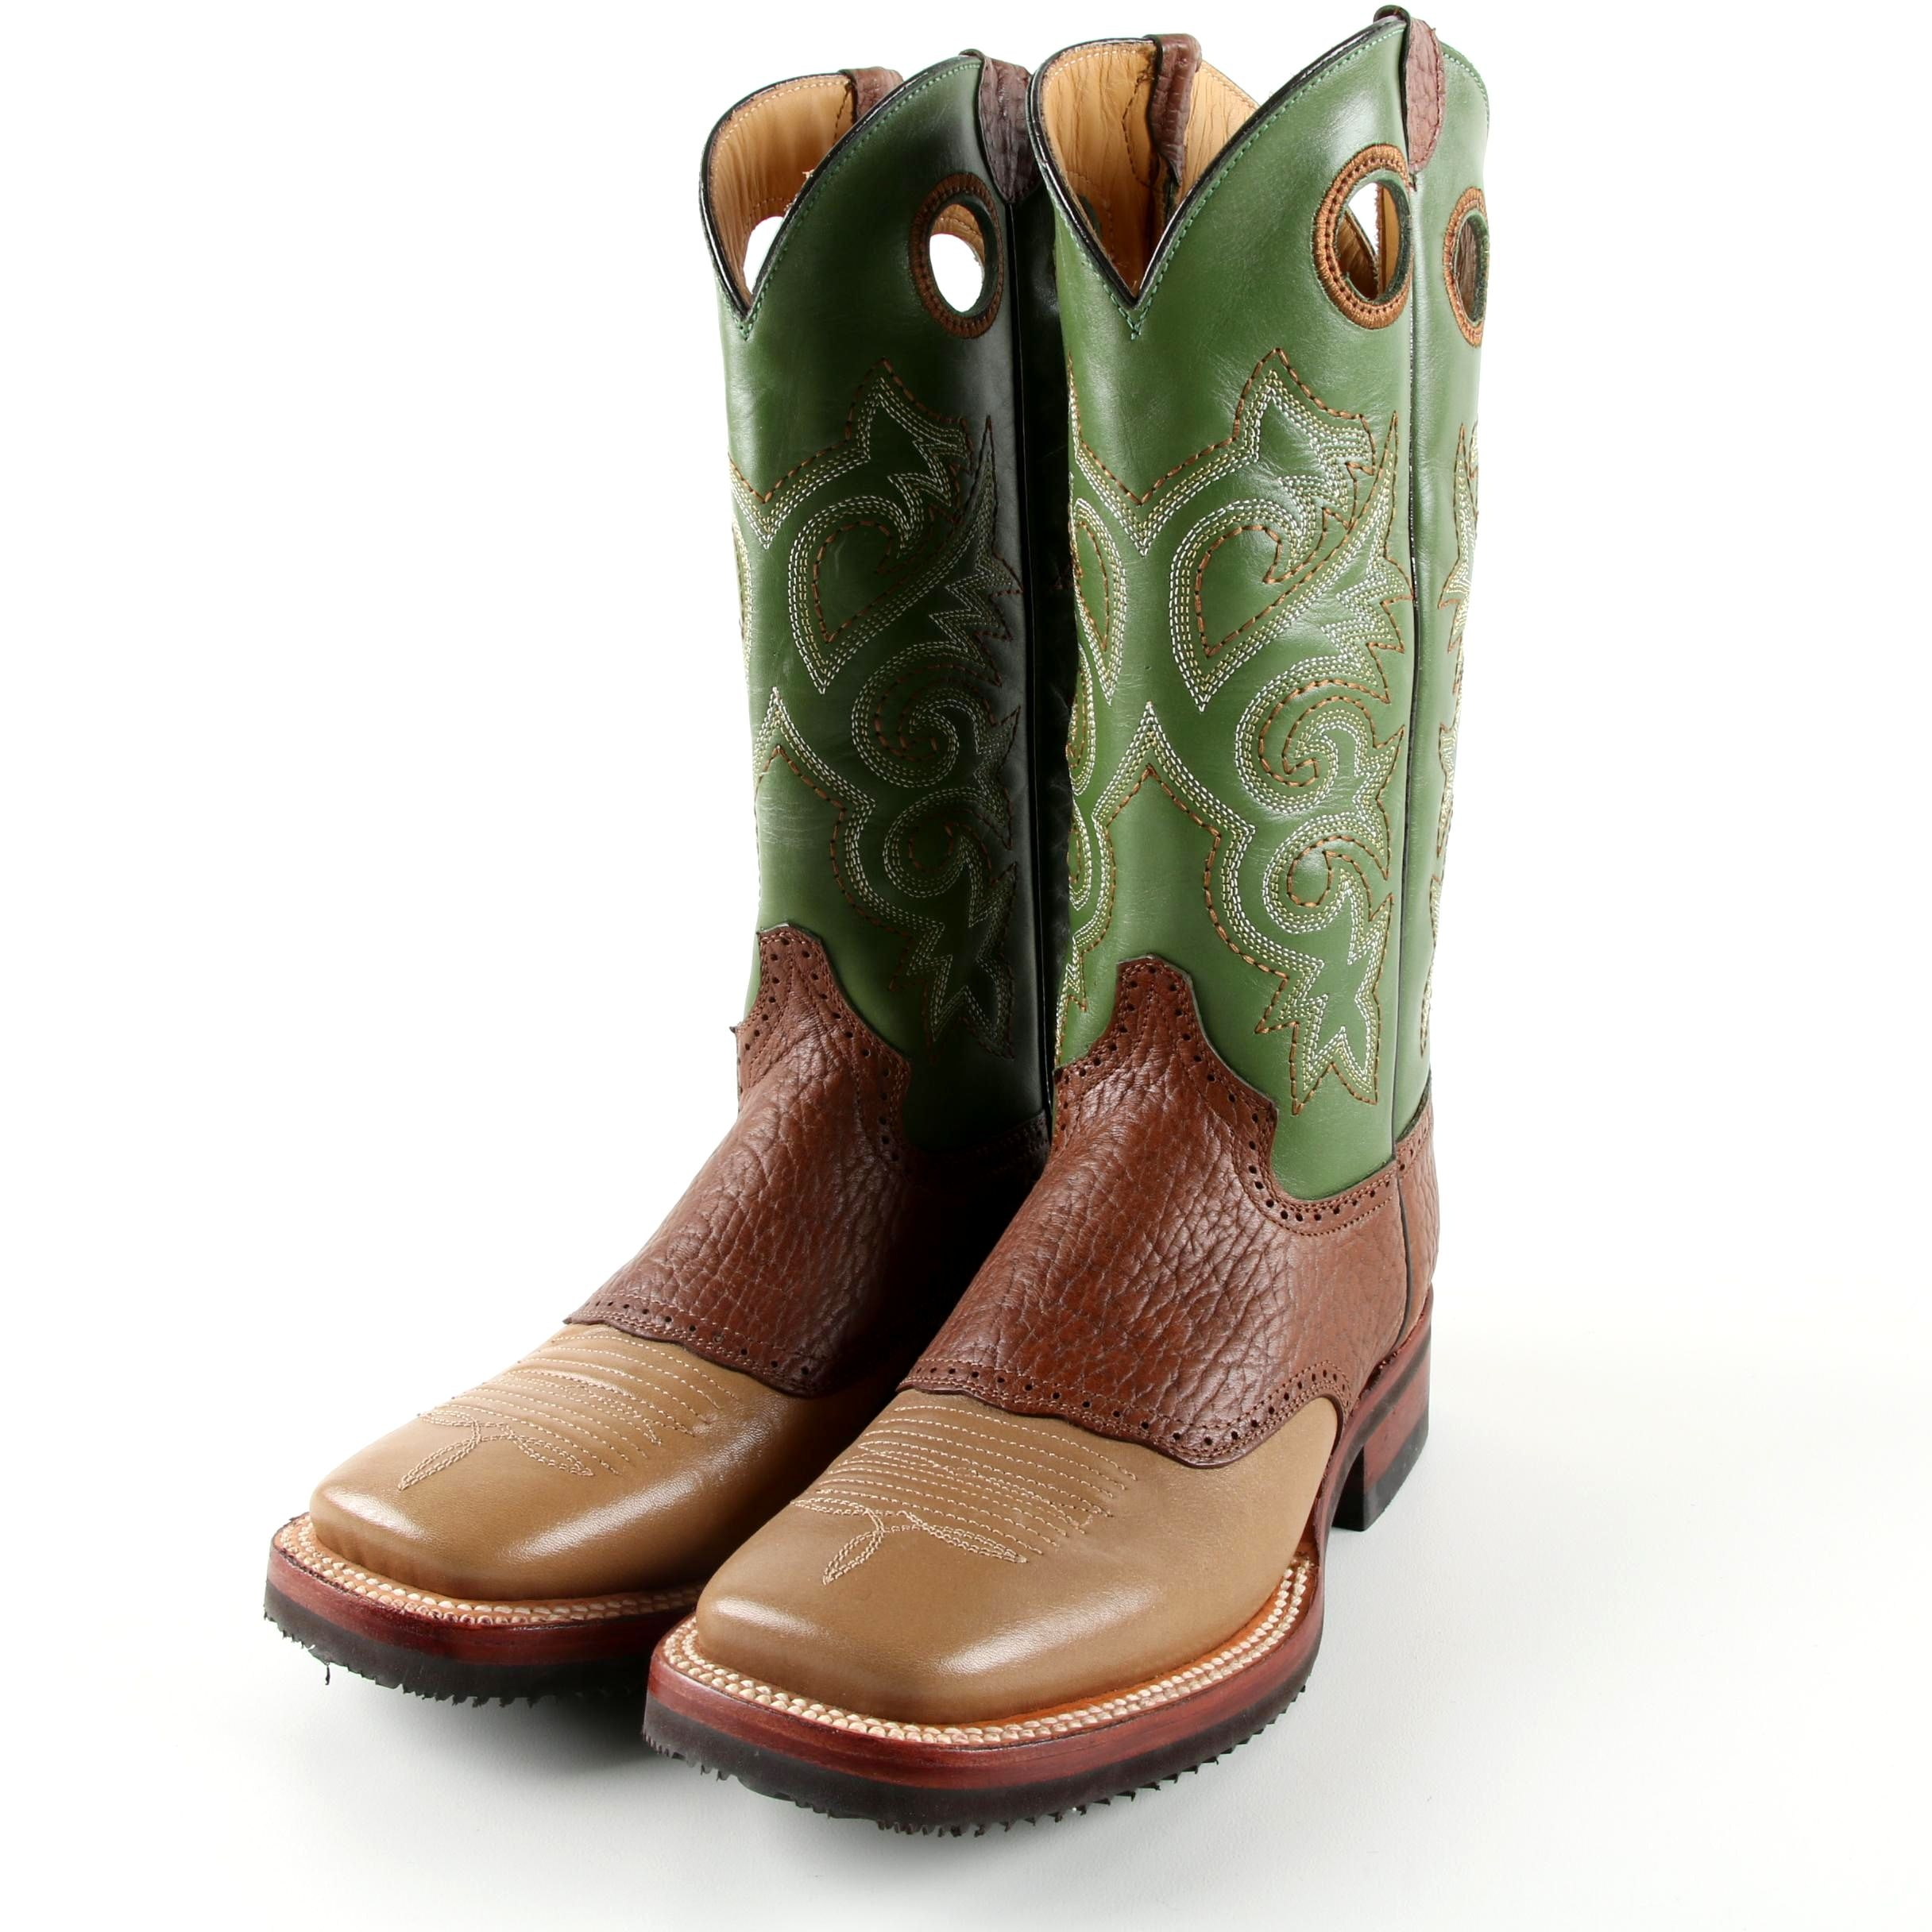 Women's Ferrini Green and Brown Leather Cowgirl Boots